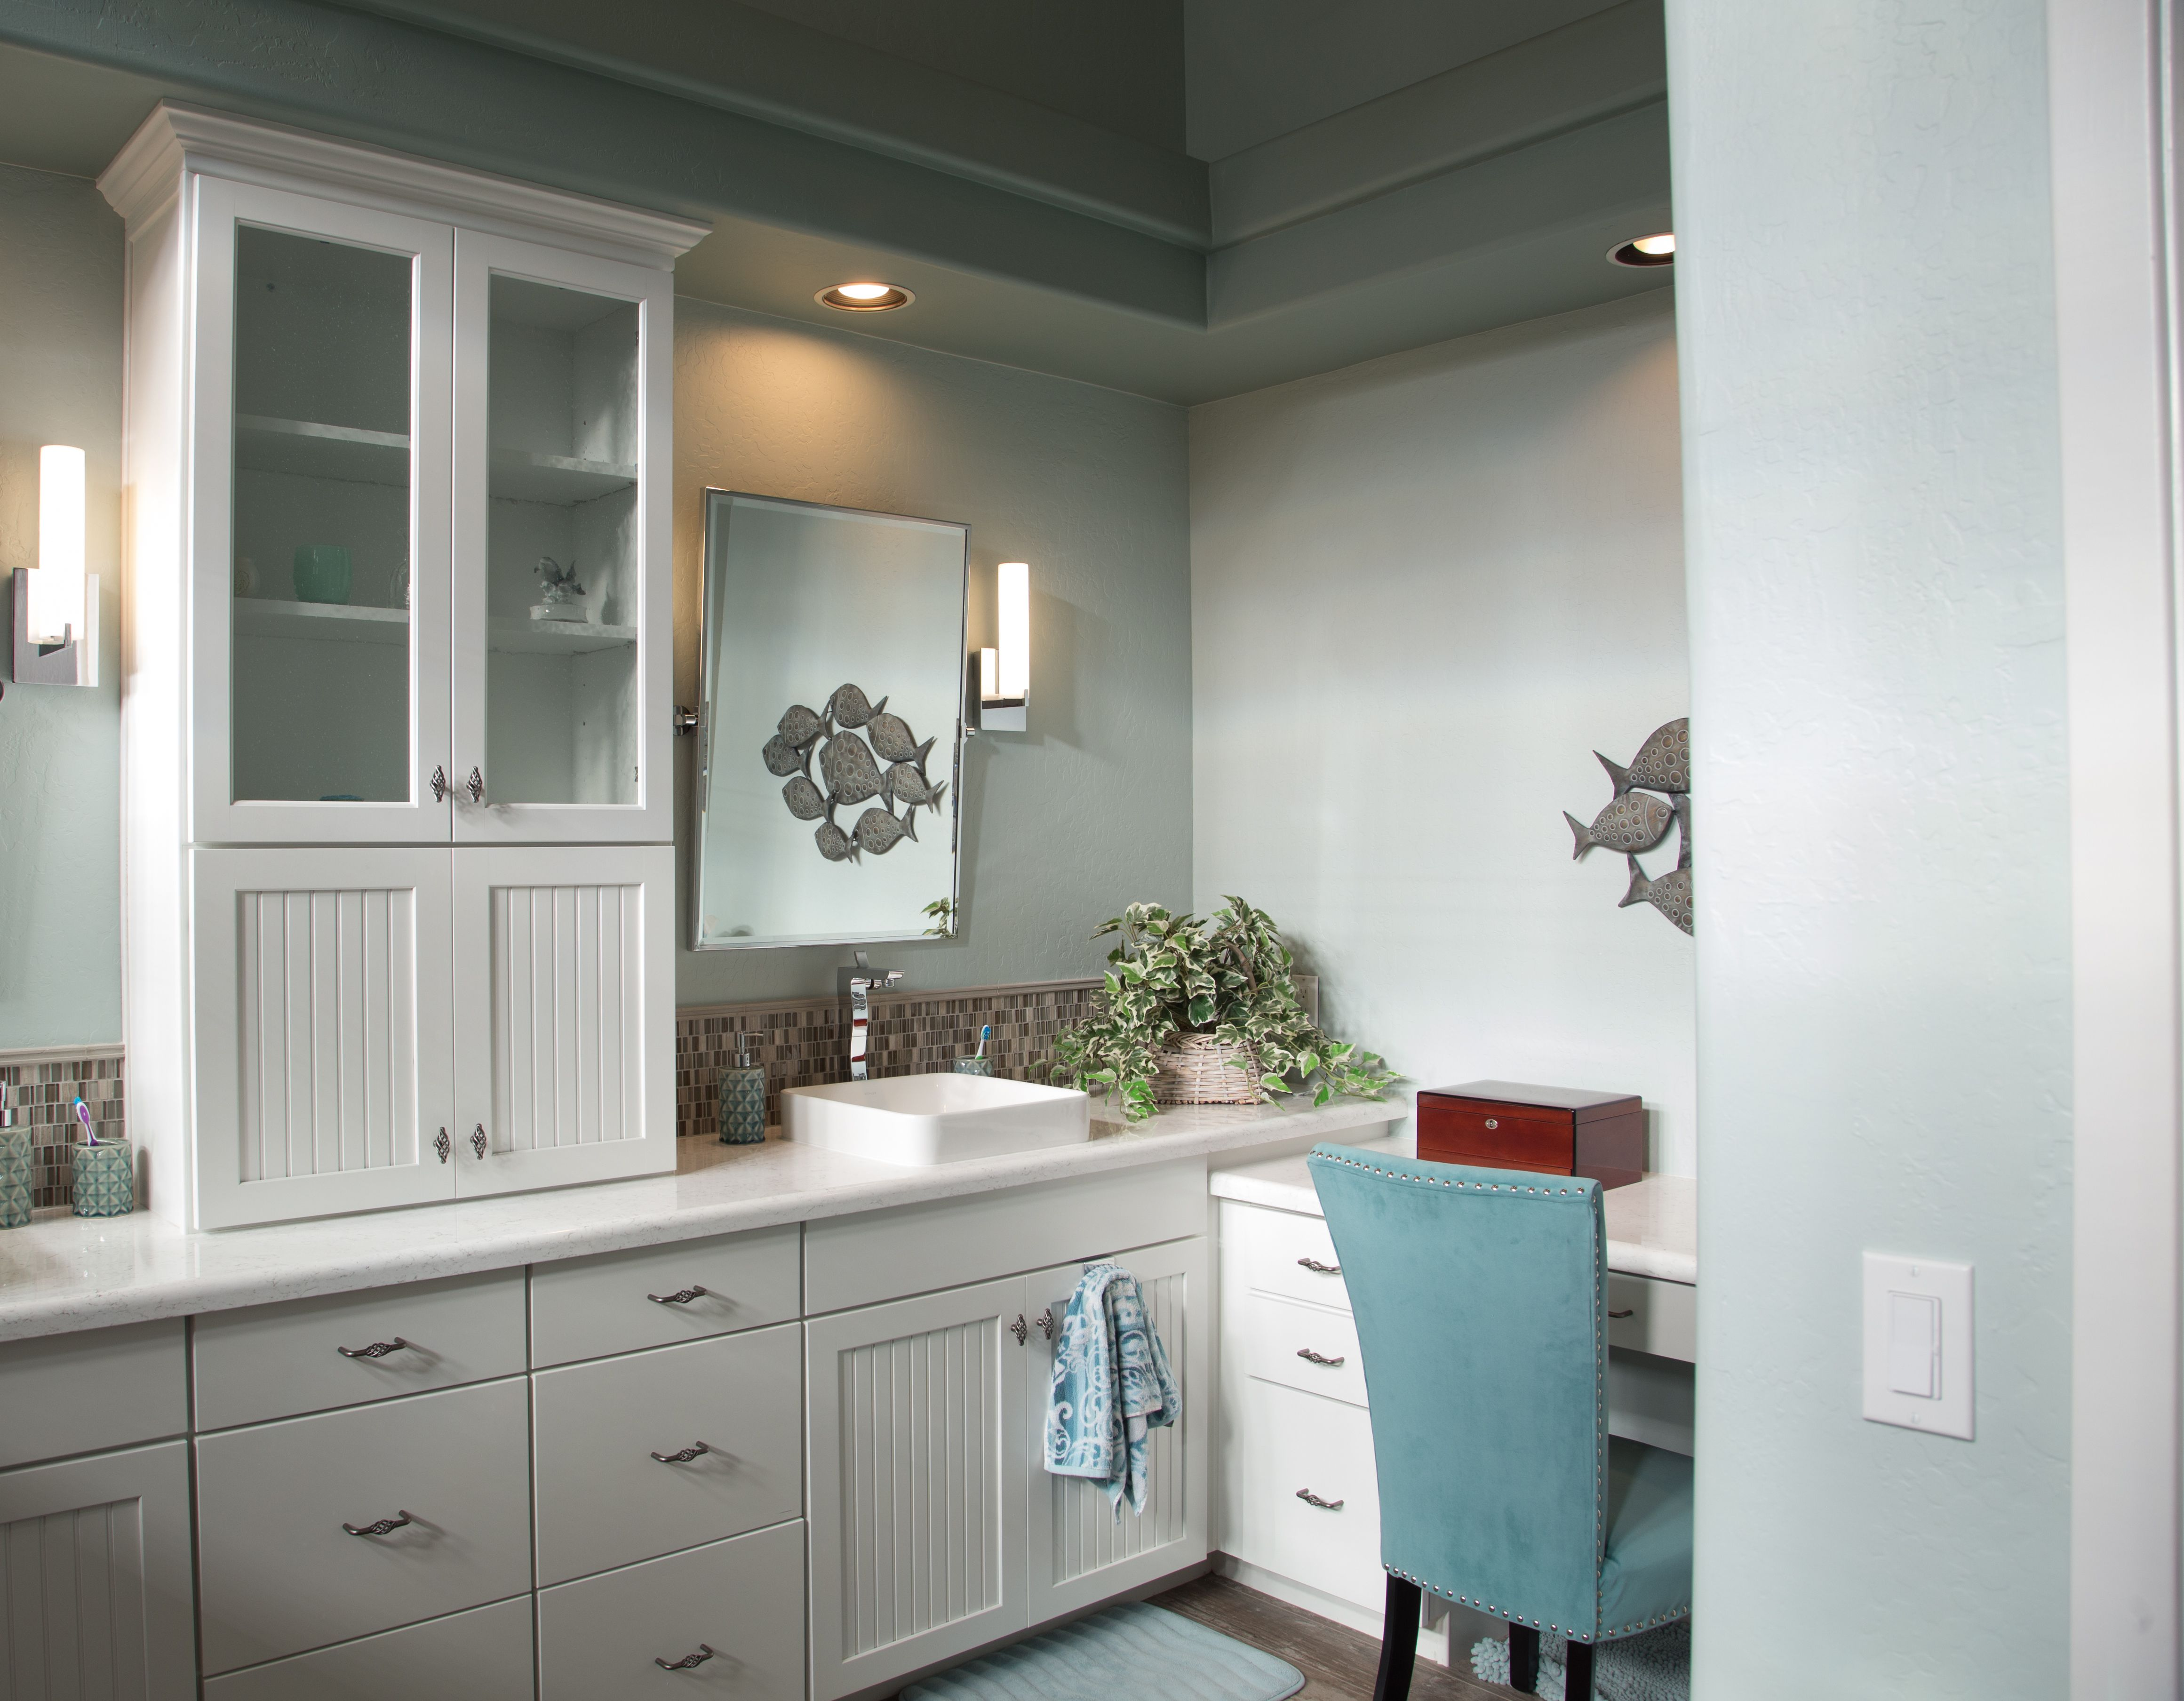 Your Master Bathroom Suite Should Reflect Your Easy Going Personality While Making Your Daily Routi Bathroom Remodel Gallery Bathrooms Remodel Dream Bathrooms [ jpg ]